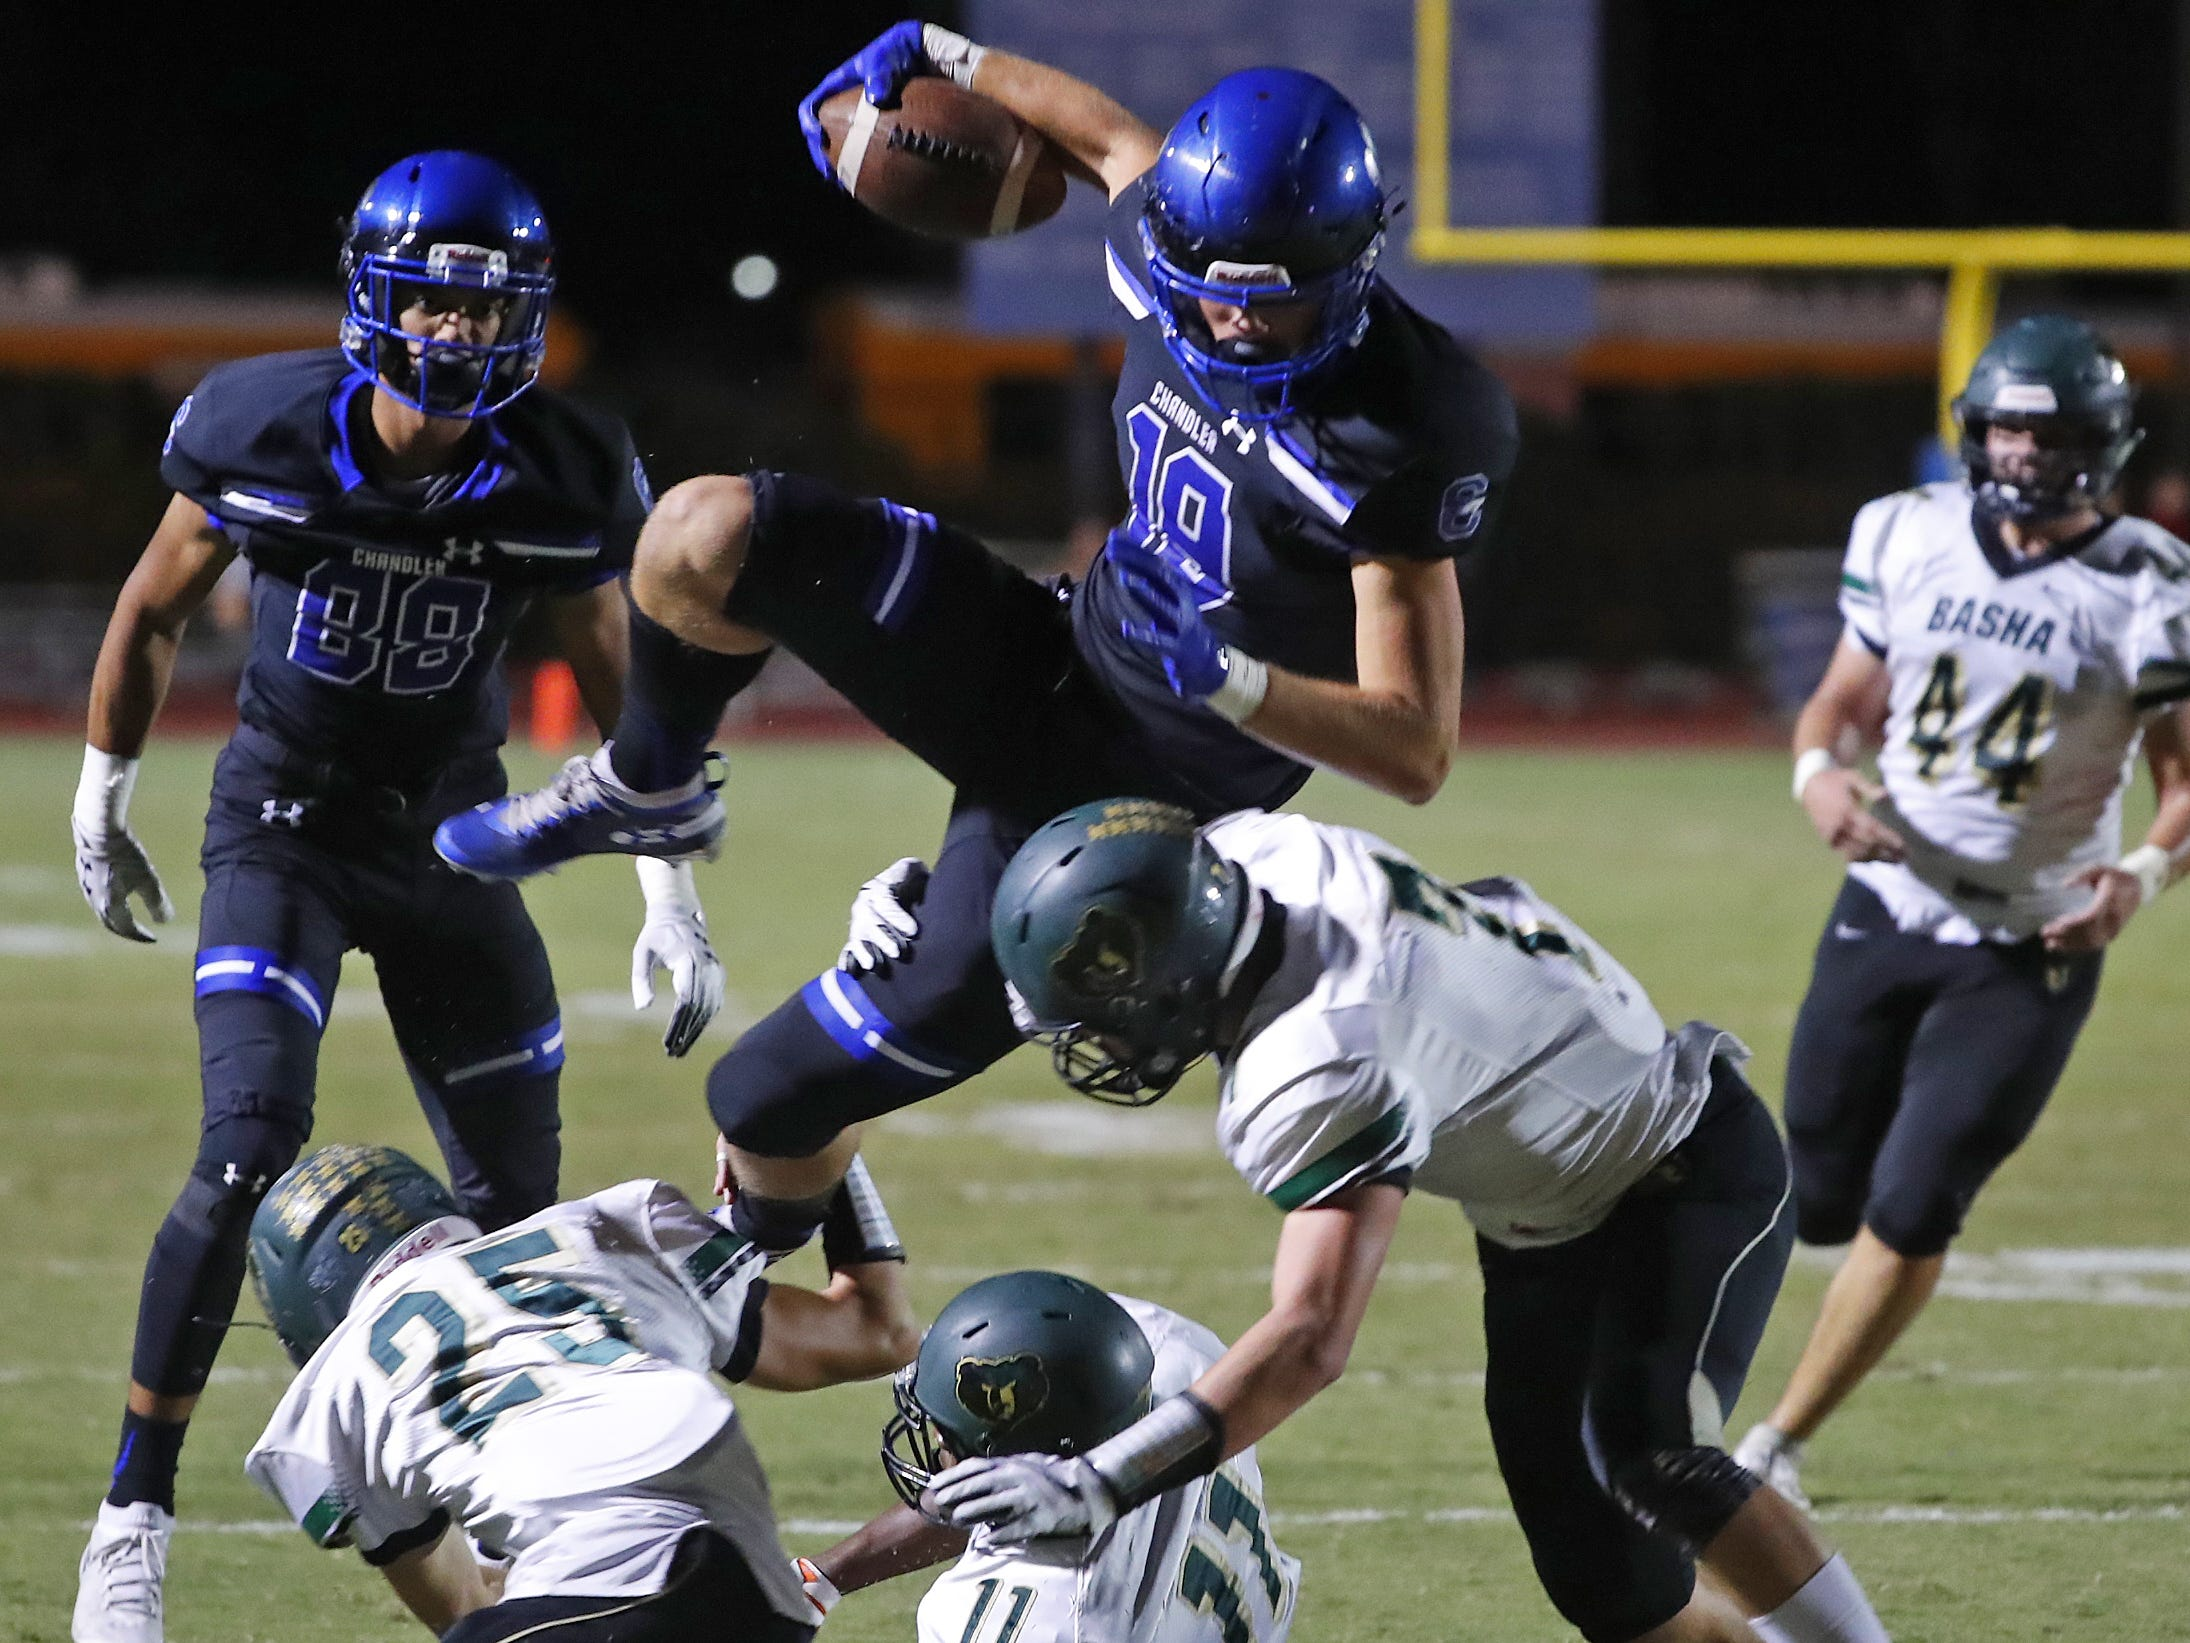 Chandler's Brayden Liebrock (19) hurdles a tackle from Basha's Nicholas Schinker (7) at Chandler High School in Chandler, Ariz. on October 12, 2018.